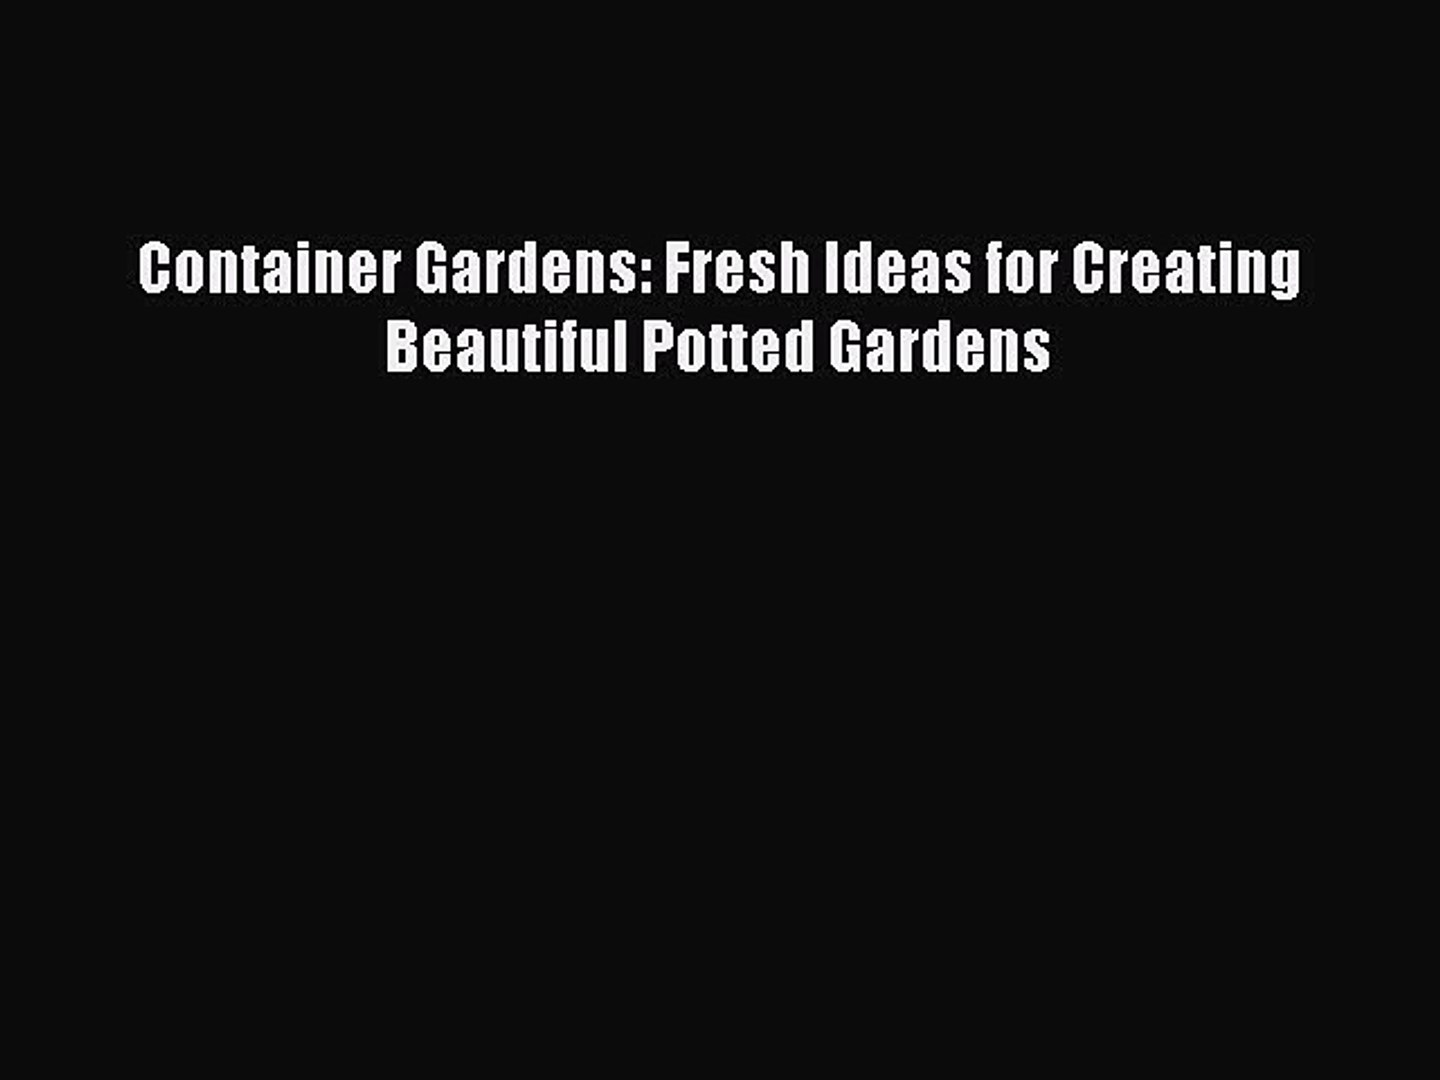 Read Container Gardens: Fresh Ideas for Creating Beautiful Potted Gardens Ebook Free